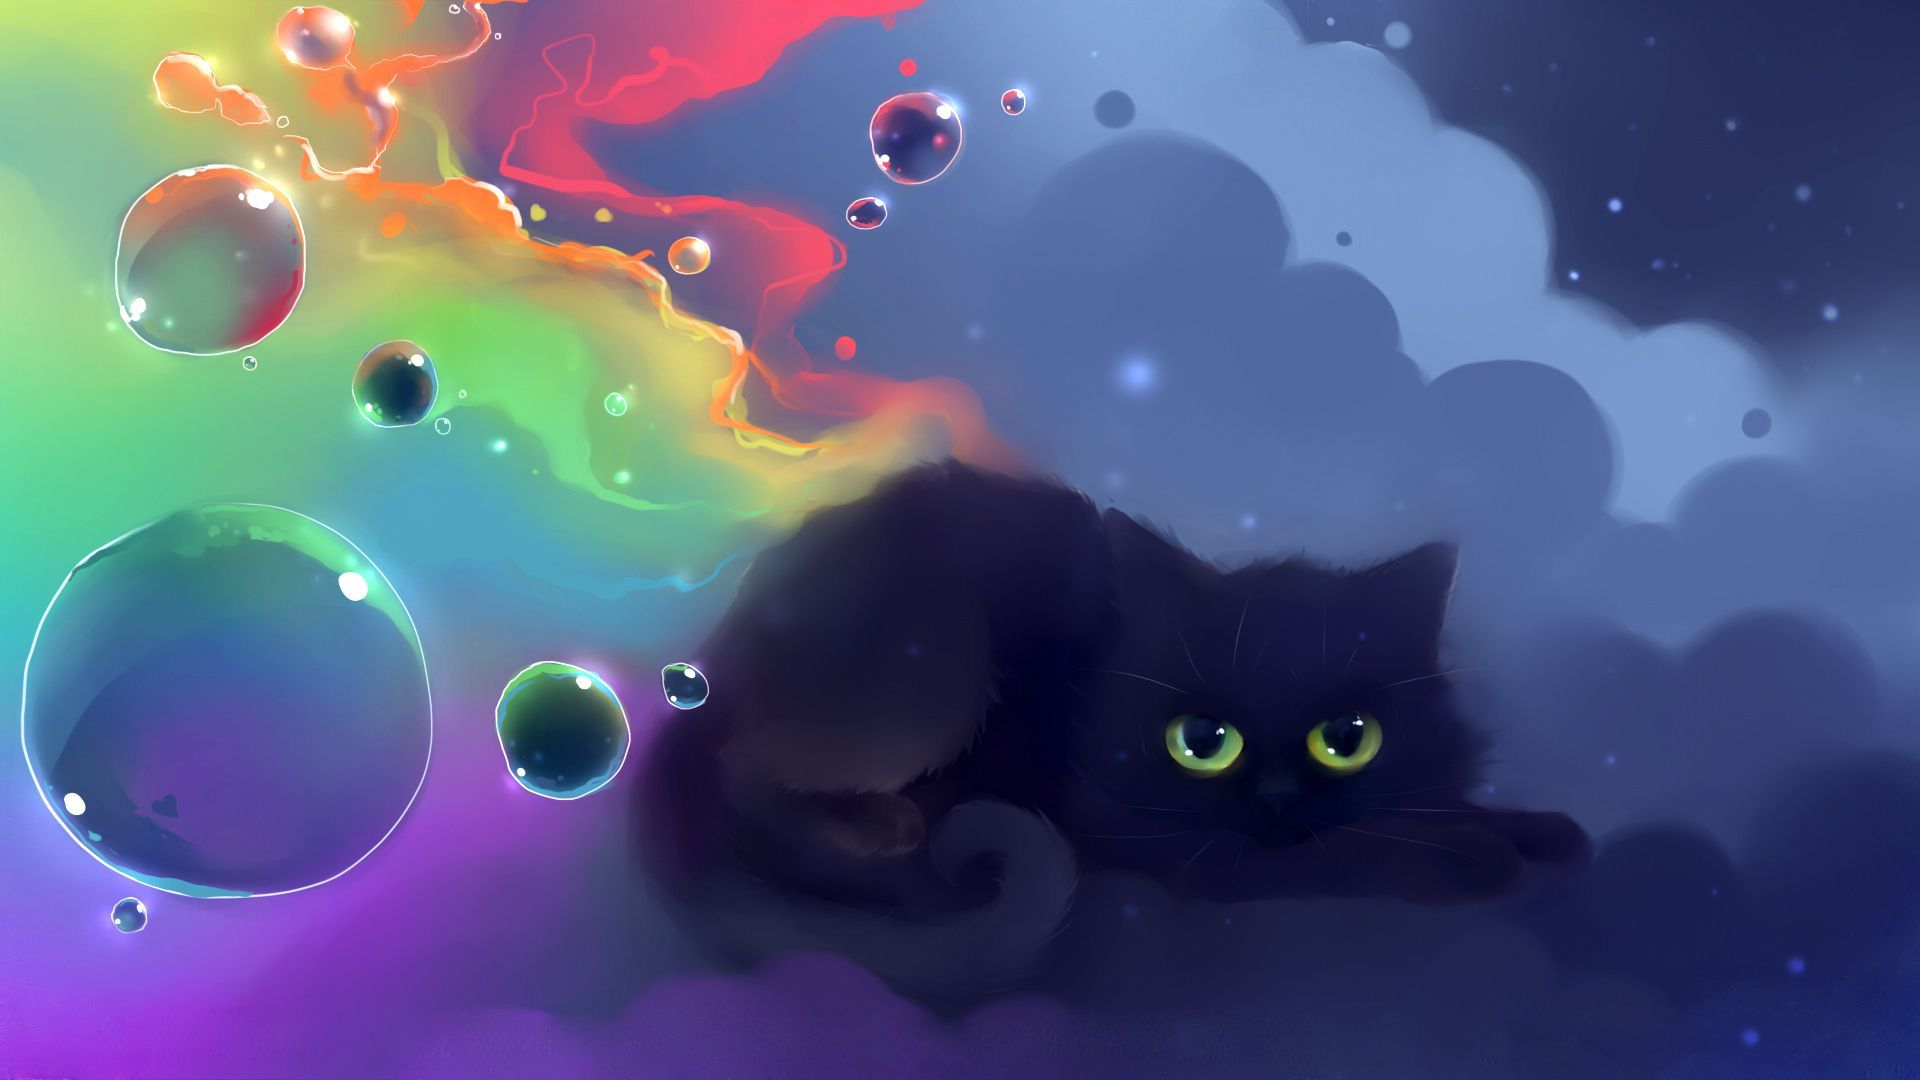 Free Download Black Cat Wallpaper 18634 1920x1080 For Your Desktop Mobile Tablet Explore 45 Black Kitten Wallpaper Cute Kitten Pictures Wallpaper Kitten Wallpaper Black Cat Screensavers And Wallpaper